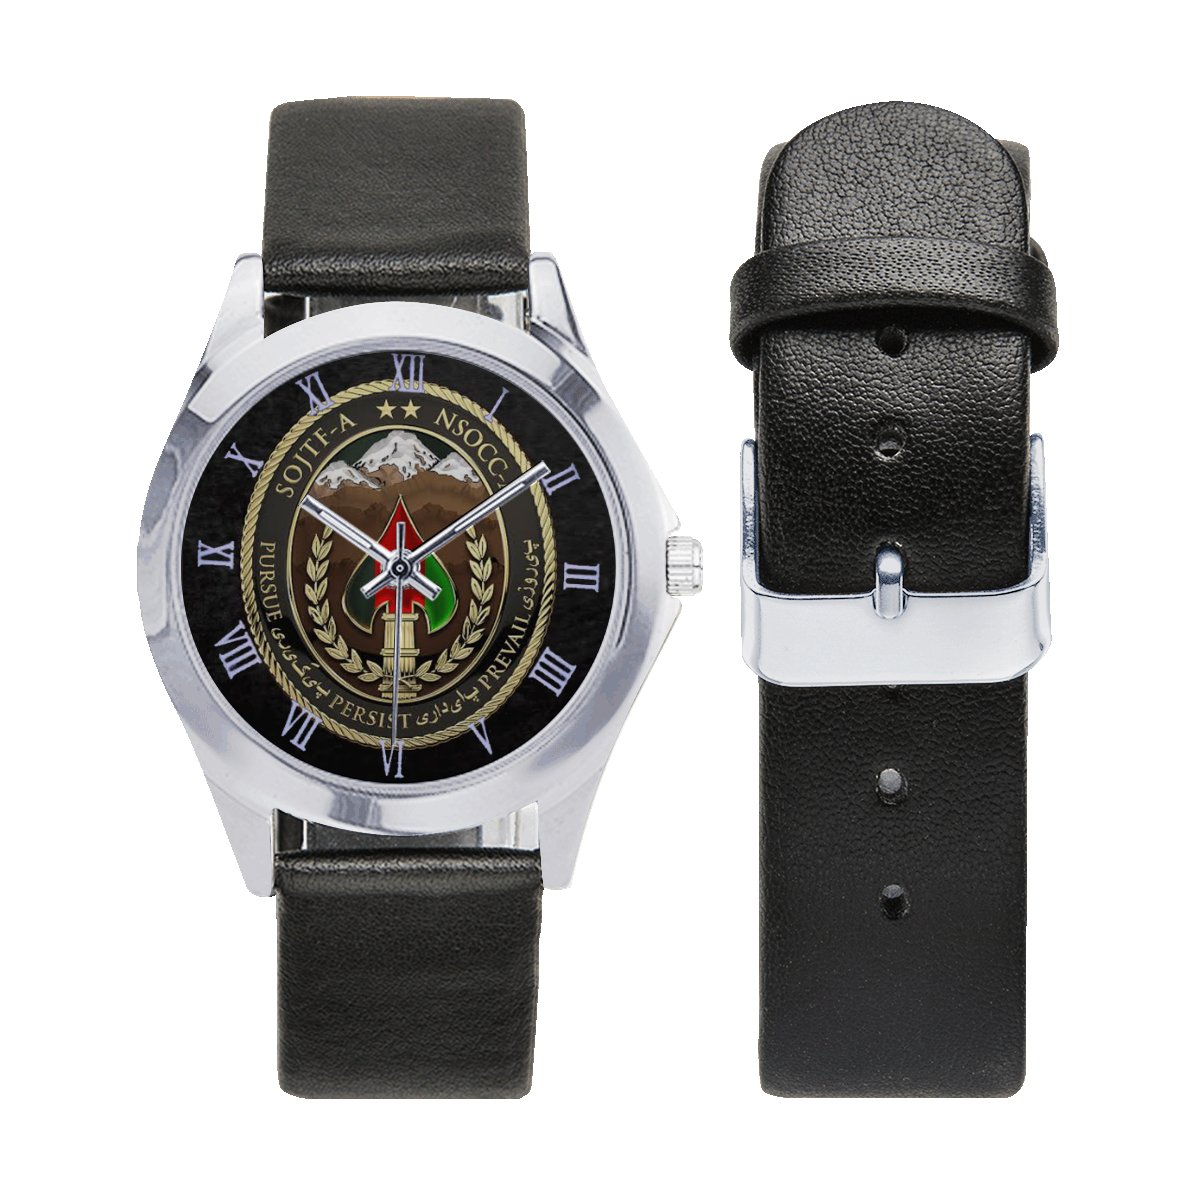 Special Operations Force - Afghanistan Army Leather Strap Watch Wrist Watches a perfect accessory